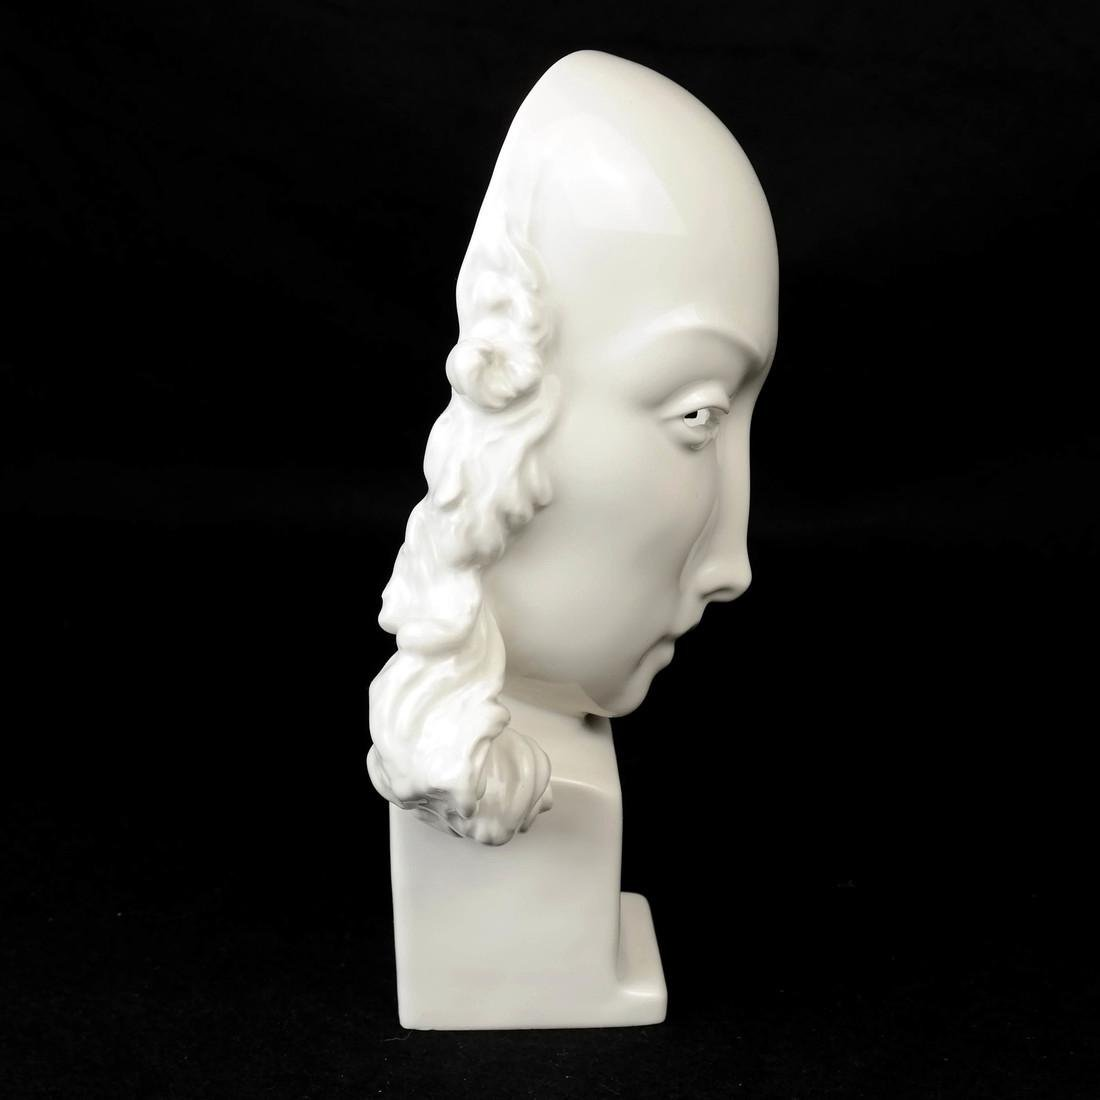 KPM Porcelain Female Face Sculpture - 4